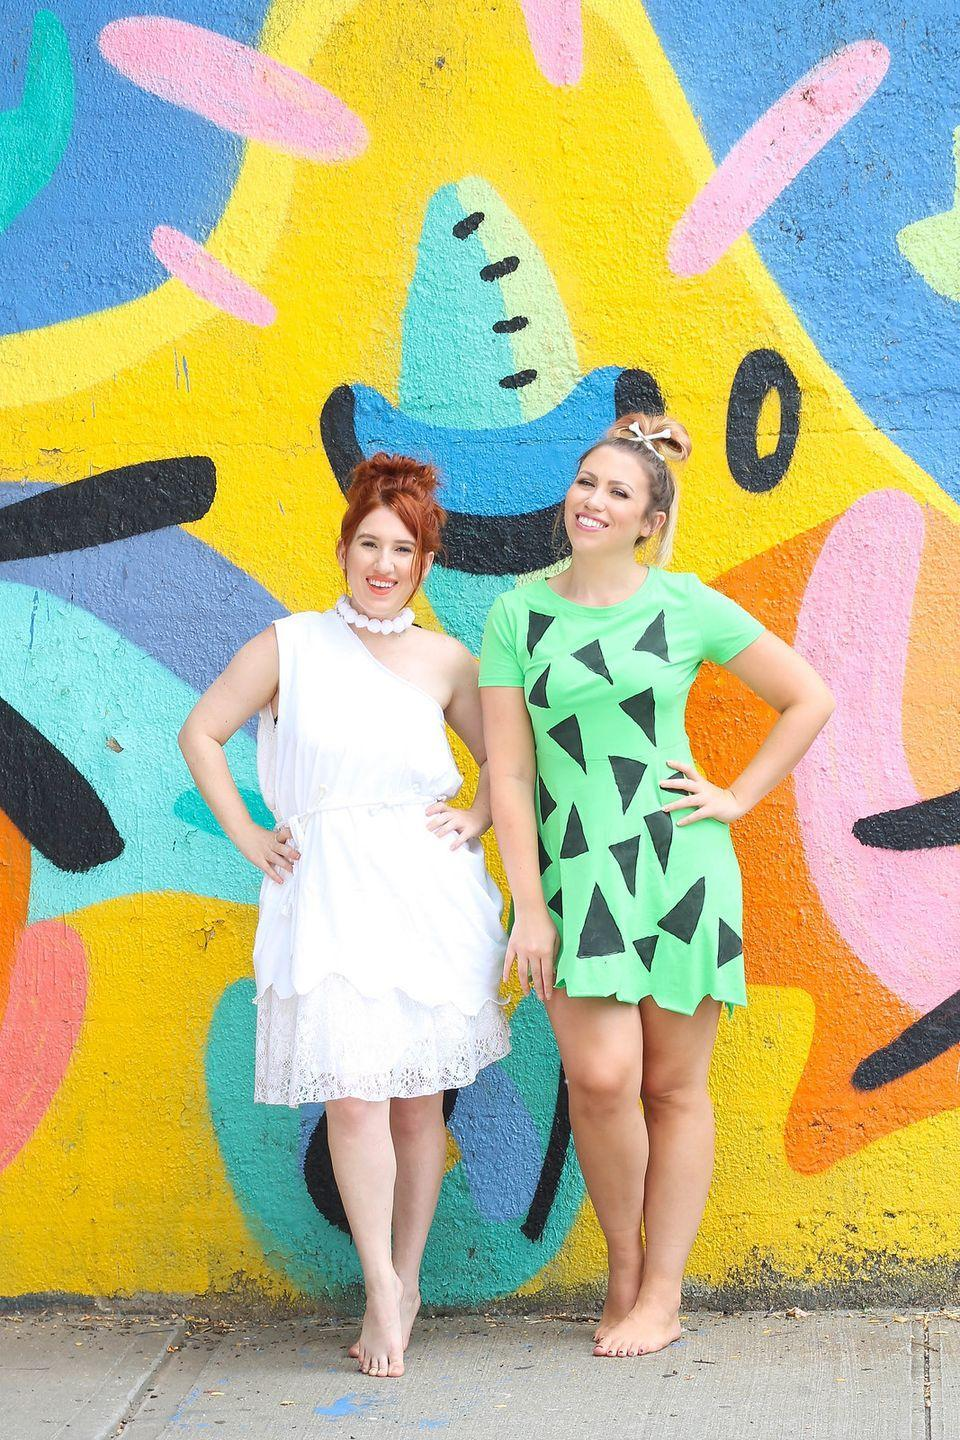 """<p>For a coordinating look, get dressed as Wilma and Pebbles this October 31. Who knew Stone Age outfits could look so cute?</p><p><strong>Get the tutorial at <a href=""""http://livingaftermidnite.com/2017/10/best-friend-halloween-costumes.html"""" rel=""""nofollow noopener"""" target=""""_blank"""" data-ylk=""""slk:Living After Midnite"""" class=""""link rapid-noclick-resp"""">Living After Midnite</a>.</strong></p><p><strong><a class=""""link rapid-noclick-resp"""" href=""""https://www.amazon.com/OMZIN-Womens-T-Shirt-Light-Green/dp/B0746G42CS?tag=syn-yahoo-20&ascsubtag=%5Bartid%7C10050.g.22118522%5Bsrc%7Cyahoo-us"""" rel=""""nofollow noopener"""" target=""""_blank"""" data-ylk=""""slk:SHOP DRESSES"""">SHOP DRESSES</a><br></strong></p>"""